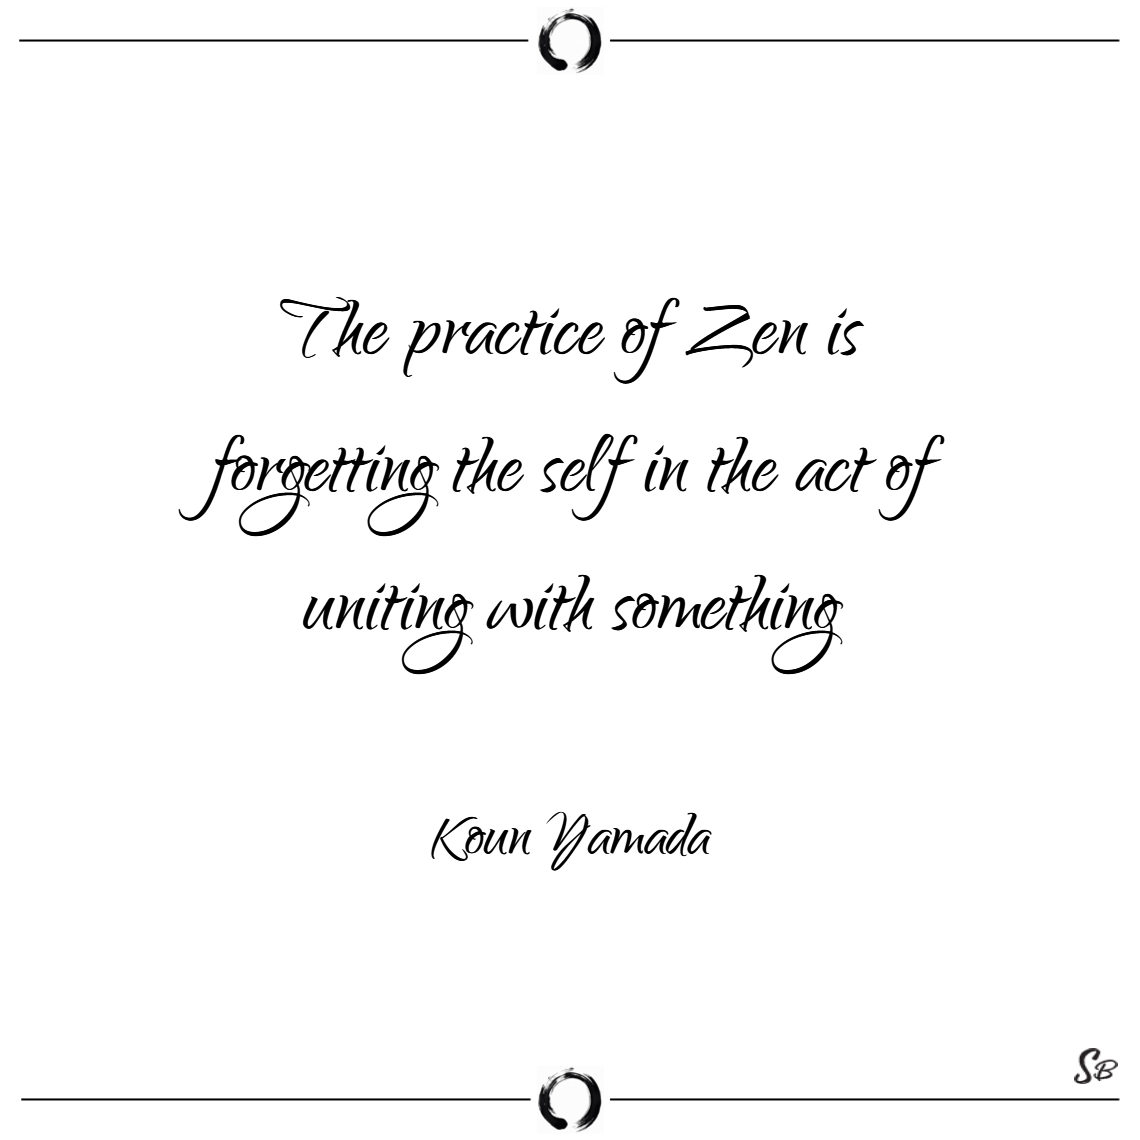 The practice of zen is forgetting the self in the